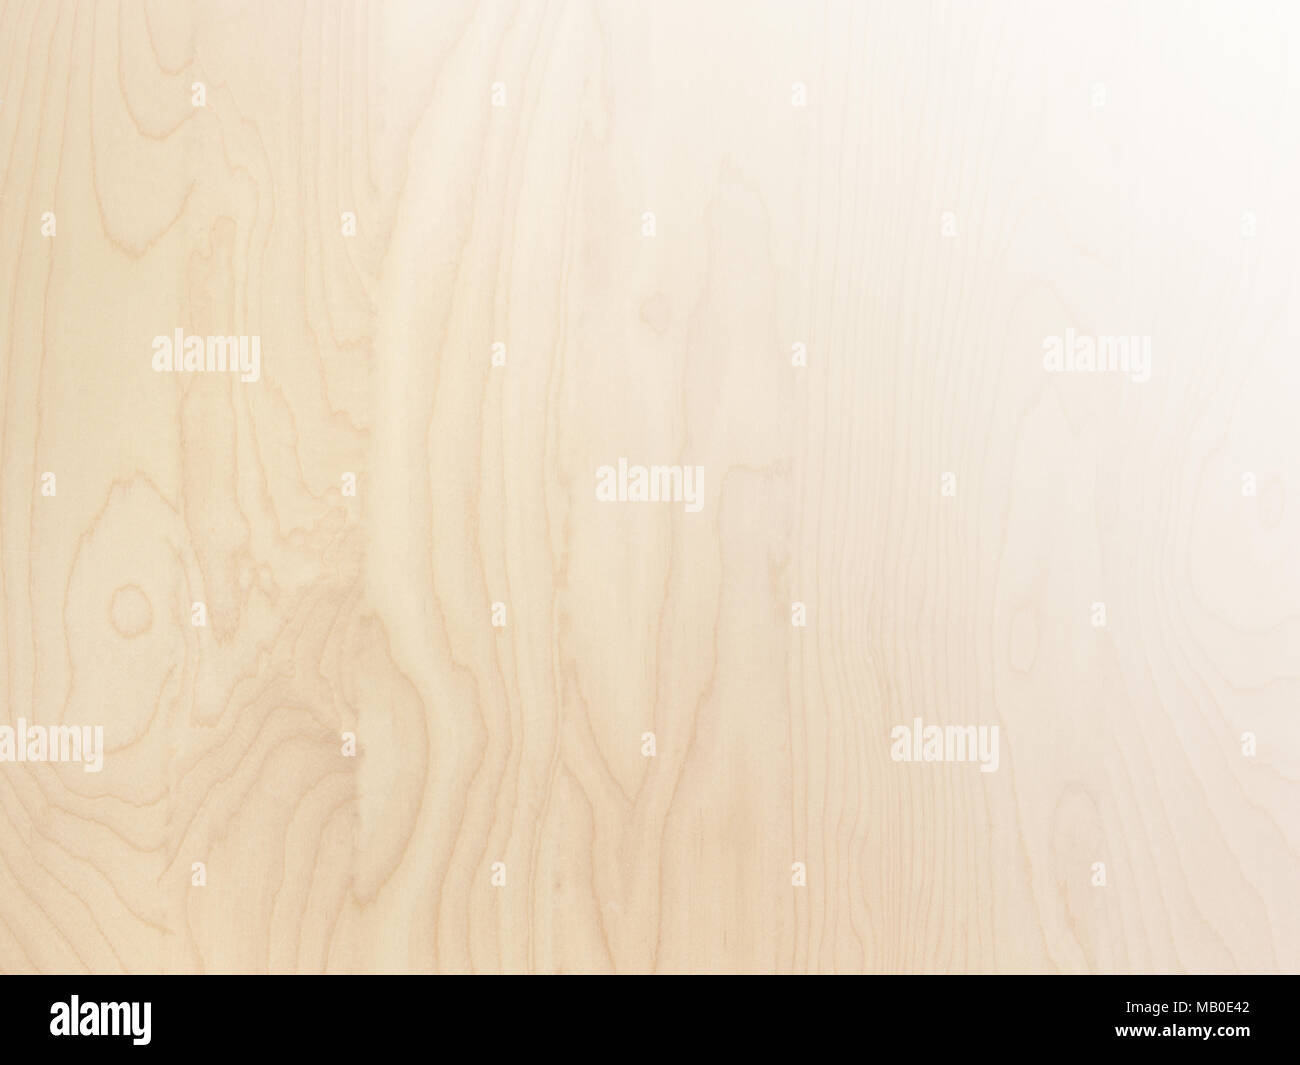 subtle light brown tan smooth birch wood grain abstract background surface with gradient